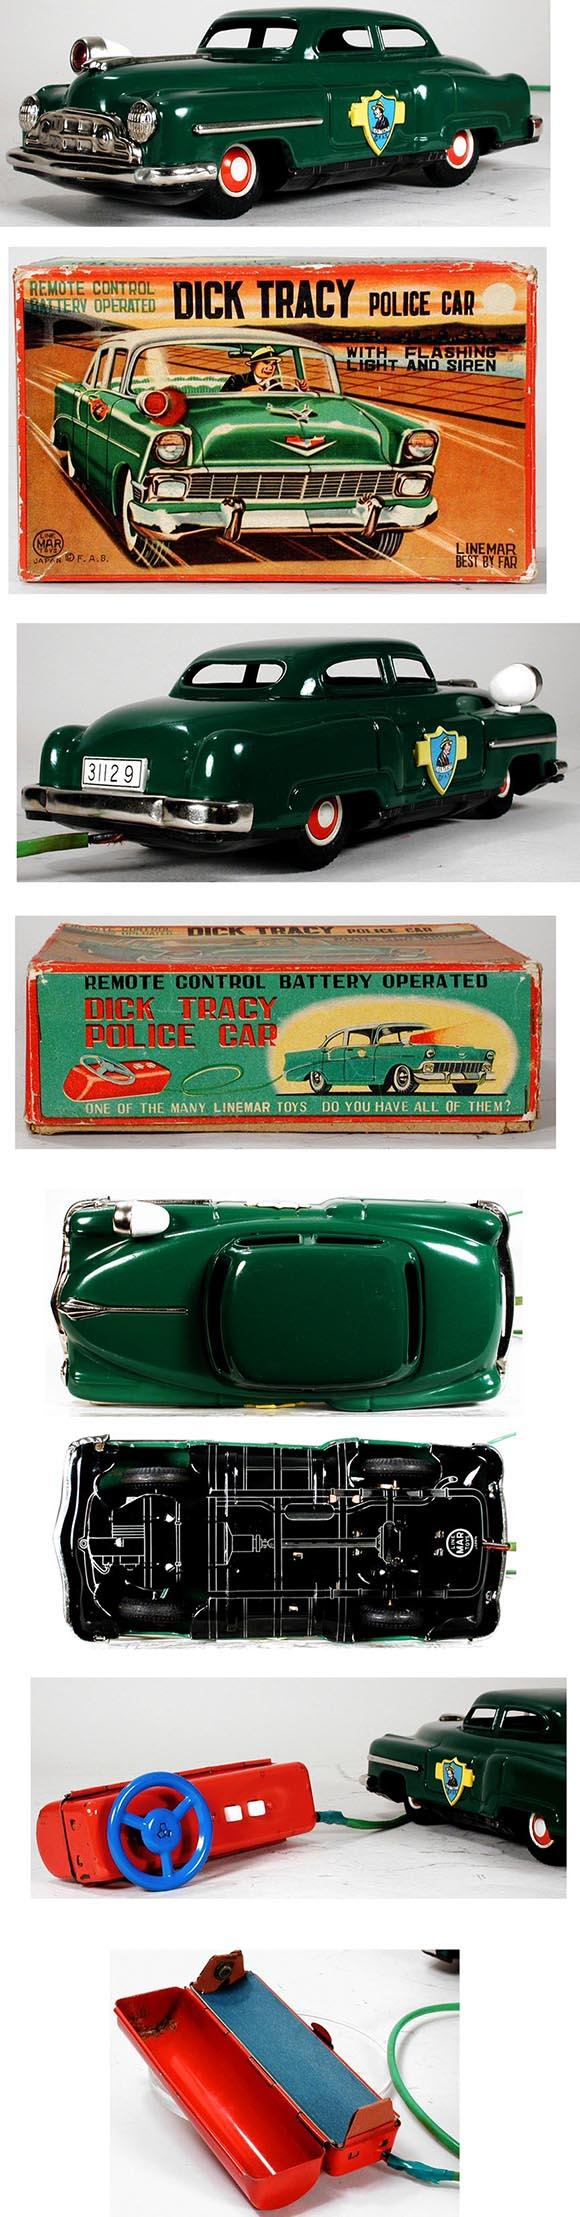 1956 Linemar, Dick Tracy Battery Operated Police Car in Original Box